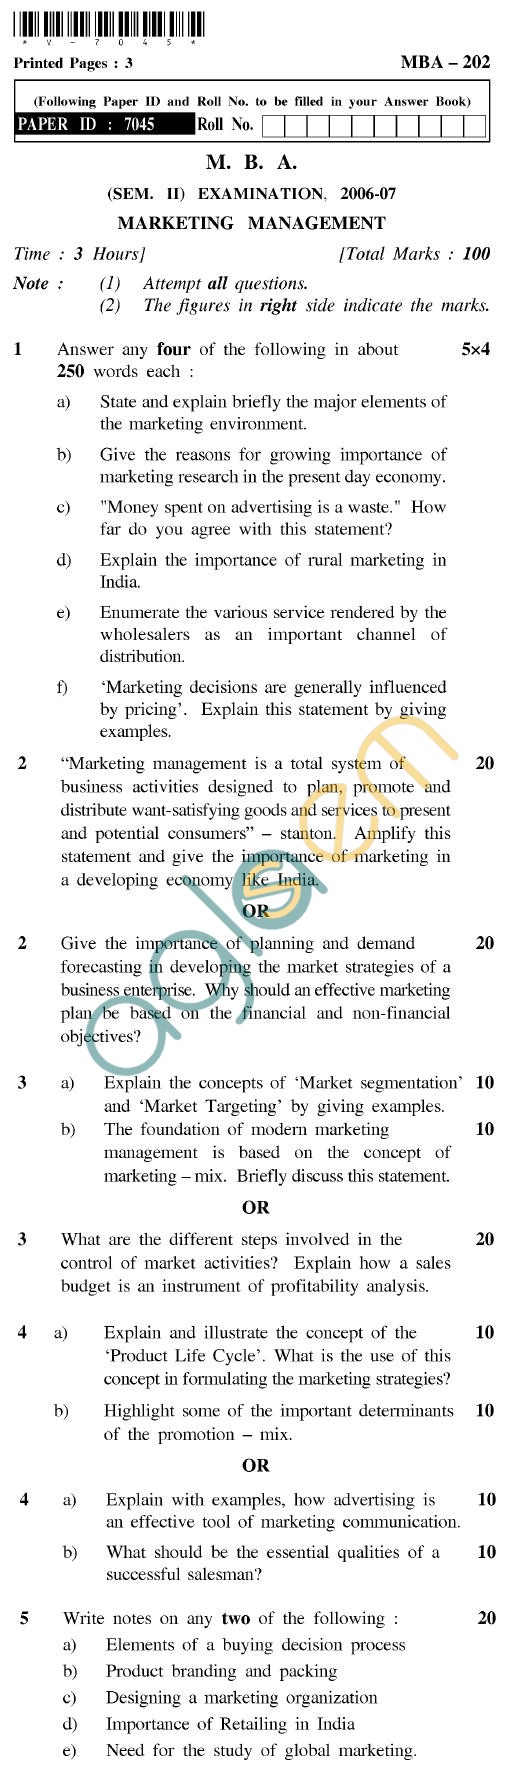 UPTU MBA Question Papers - MBA-202-Marketing Management